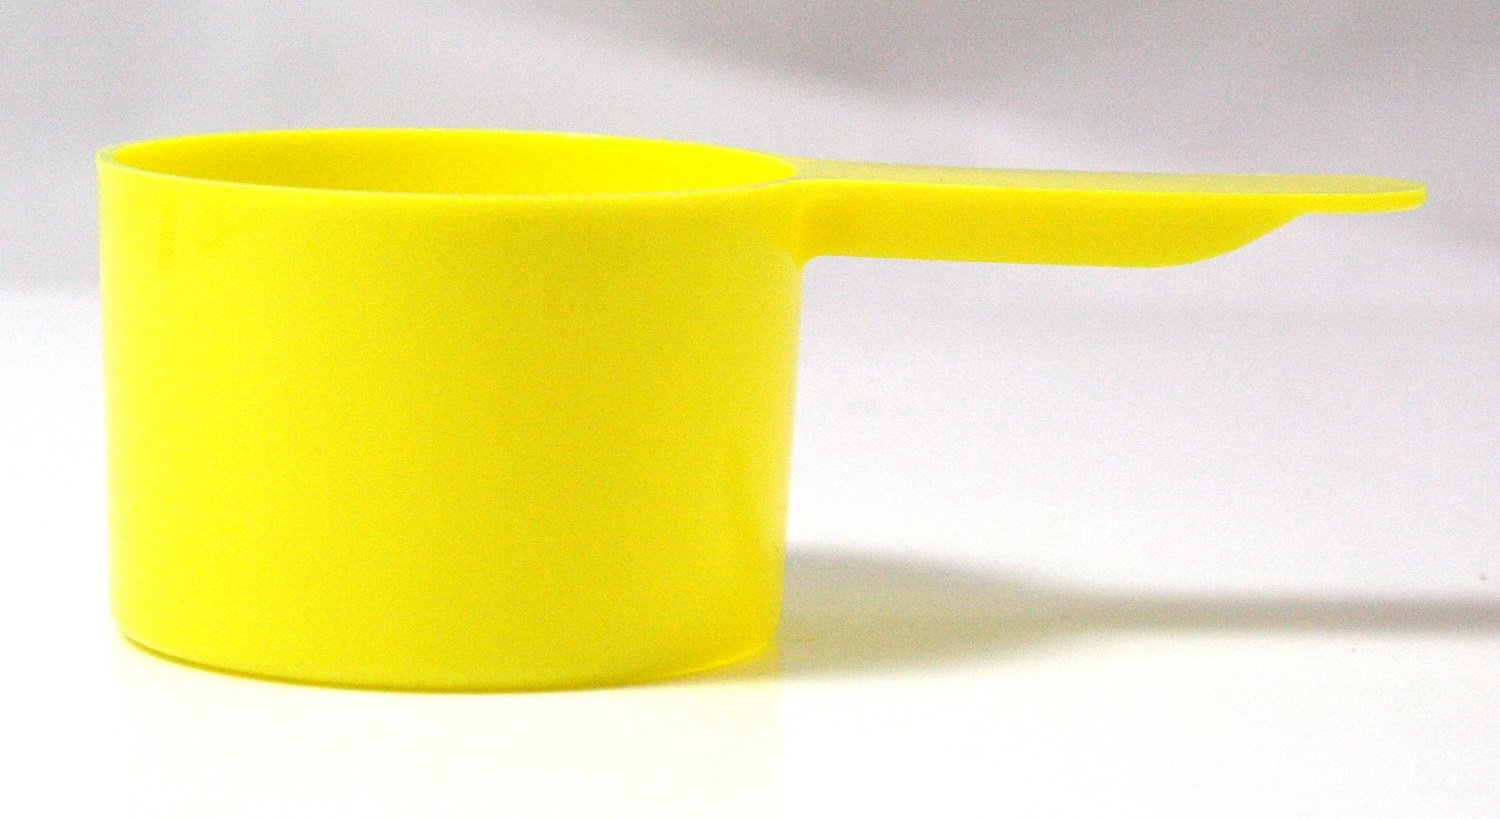 1 Ounce (29.6mL) Yellow Plastic Measure, Pack of 25 Measuring Scoops by OnlineScienceMall